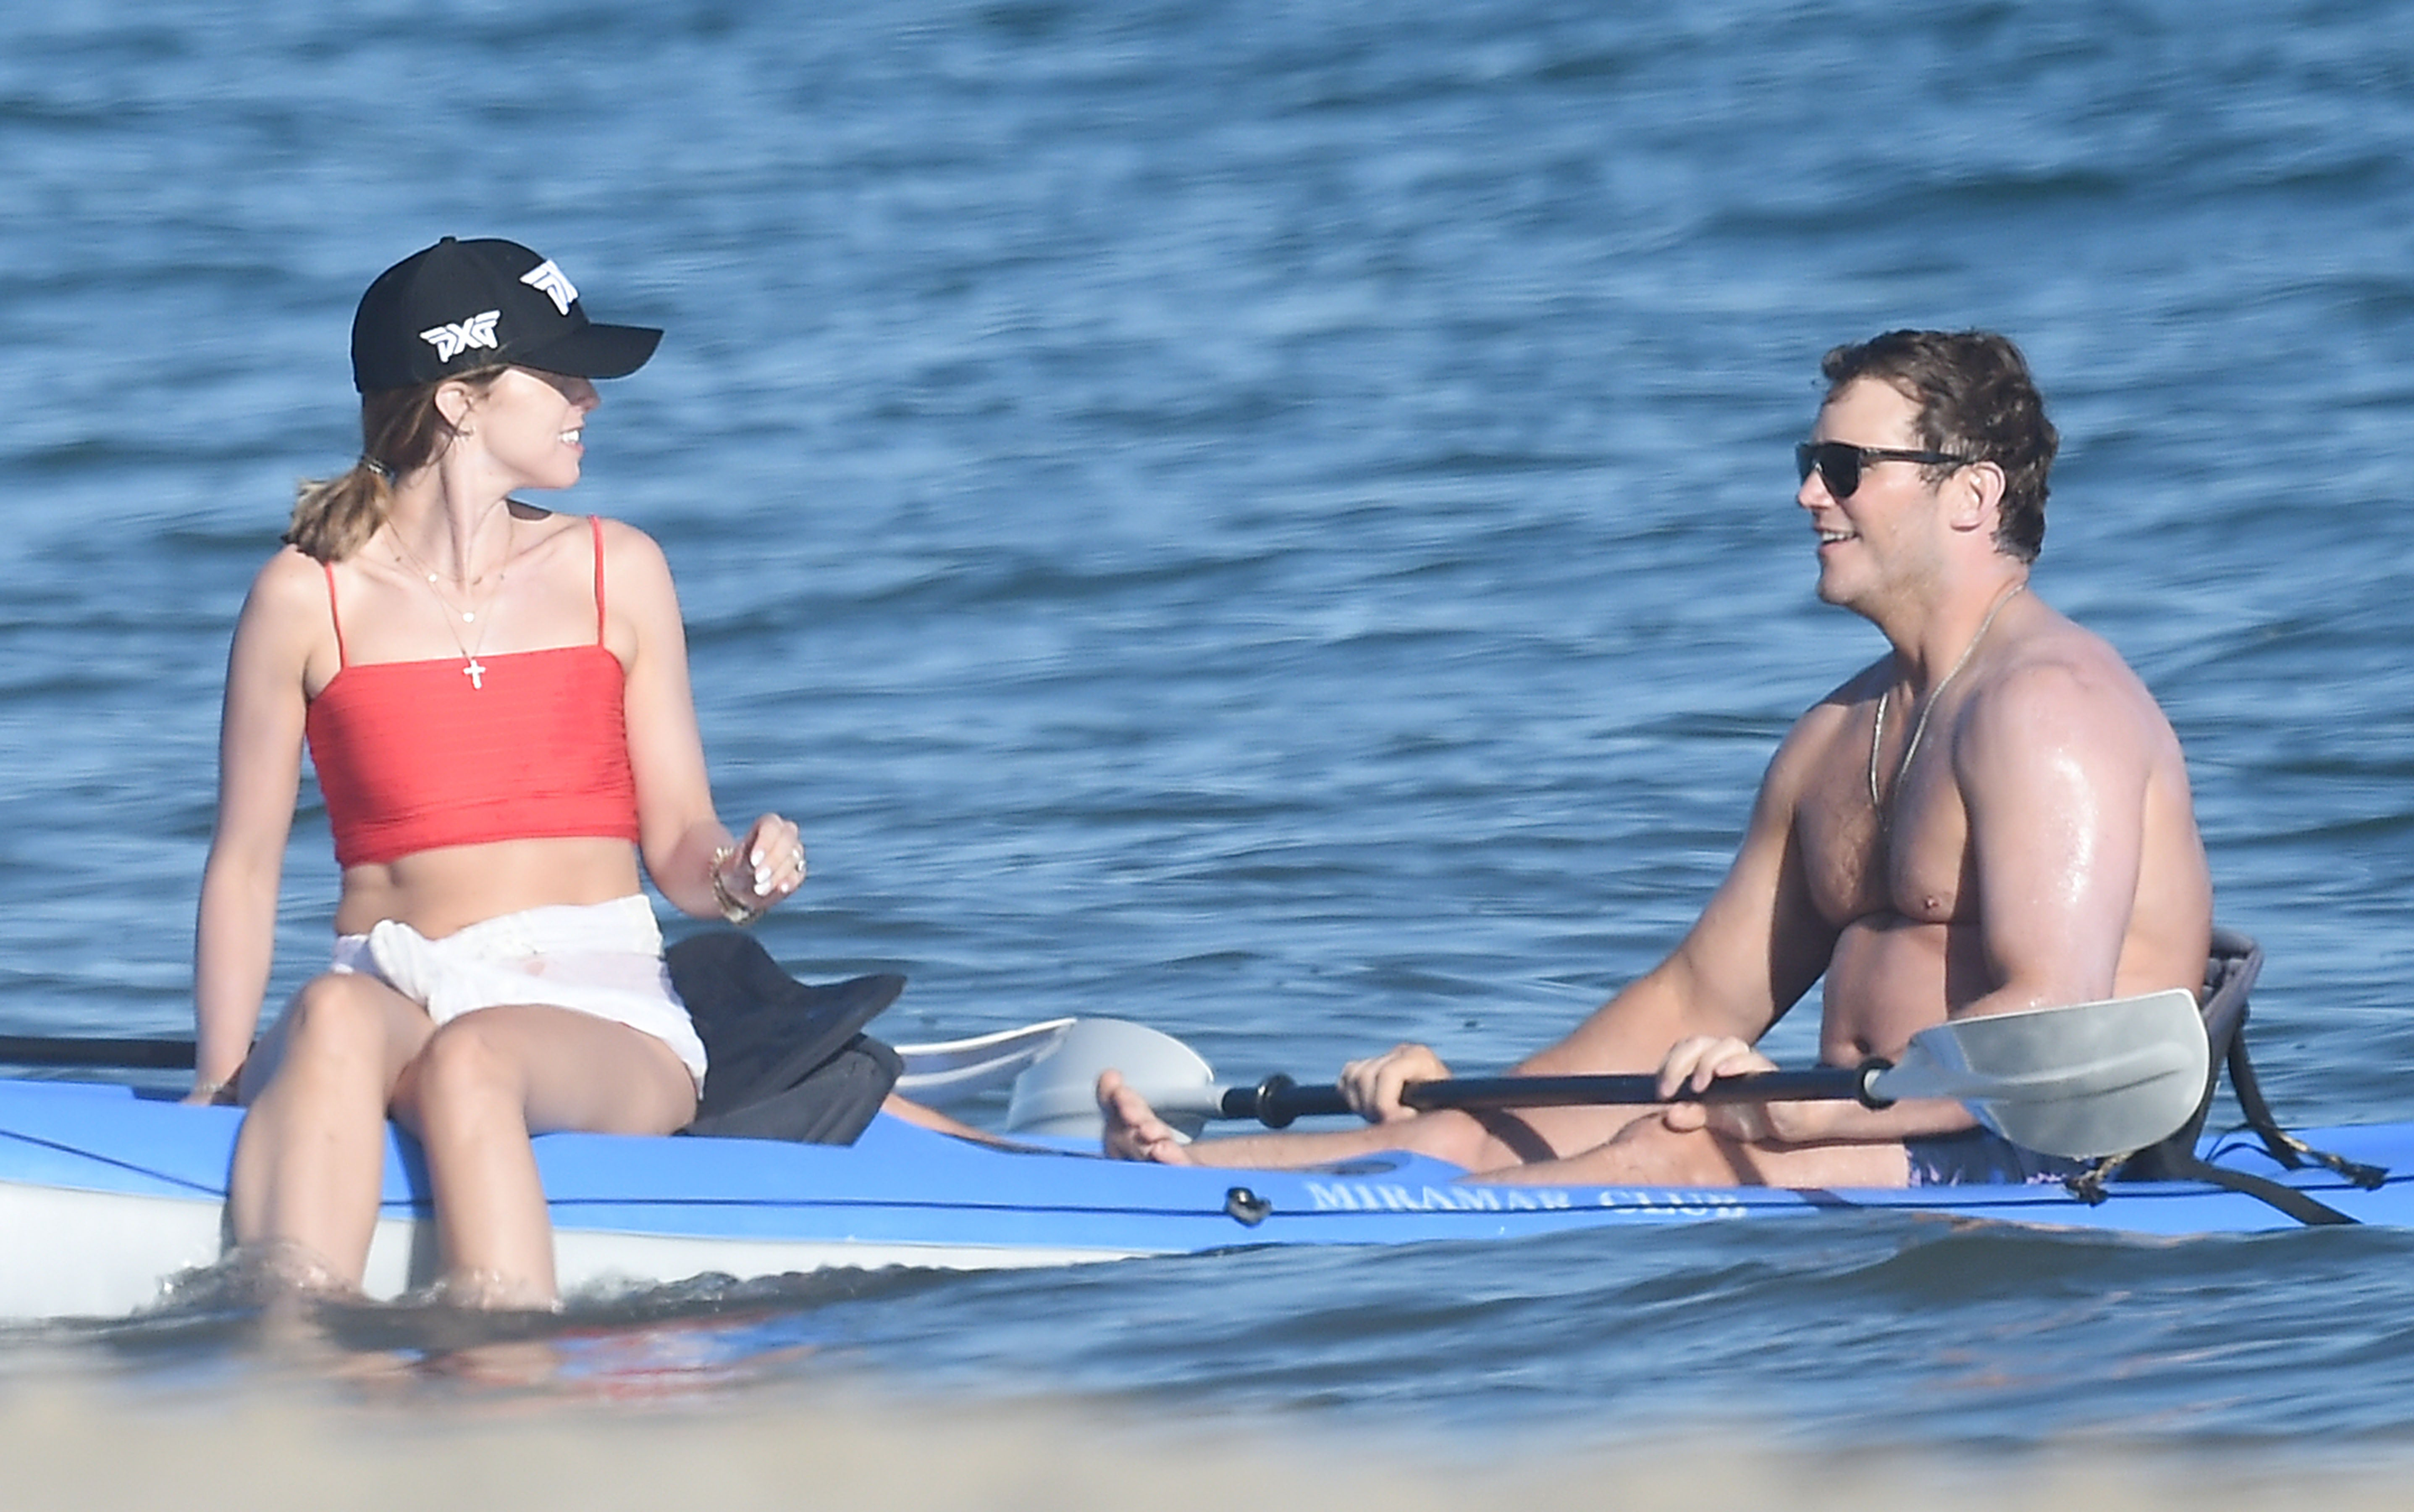 Shirtless Chris Pratt Has Beach Day With Wife Katherine Schwarzenegger & His 'Parks and Rec' Co-Star Rob Lowe